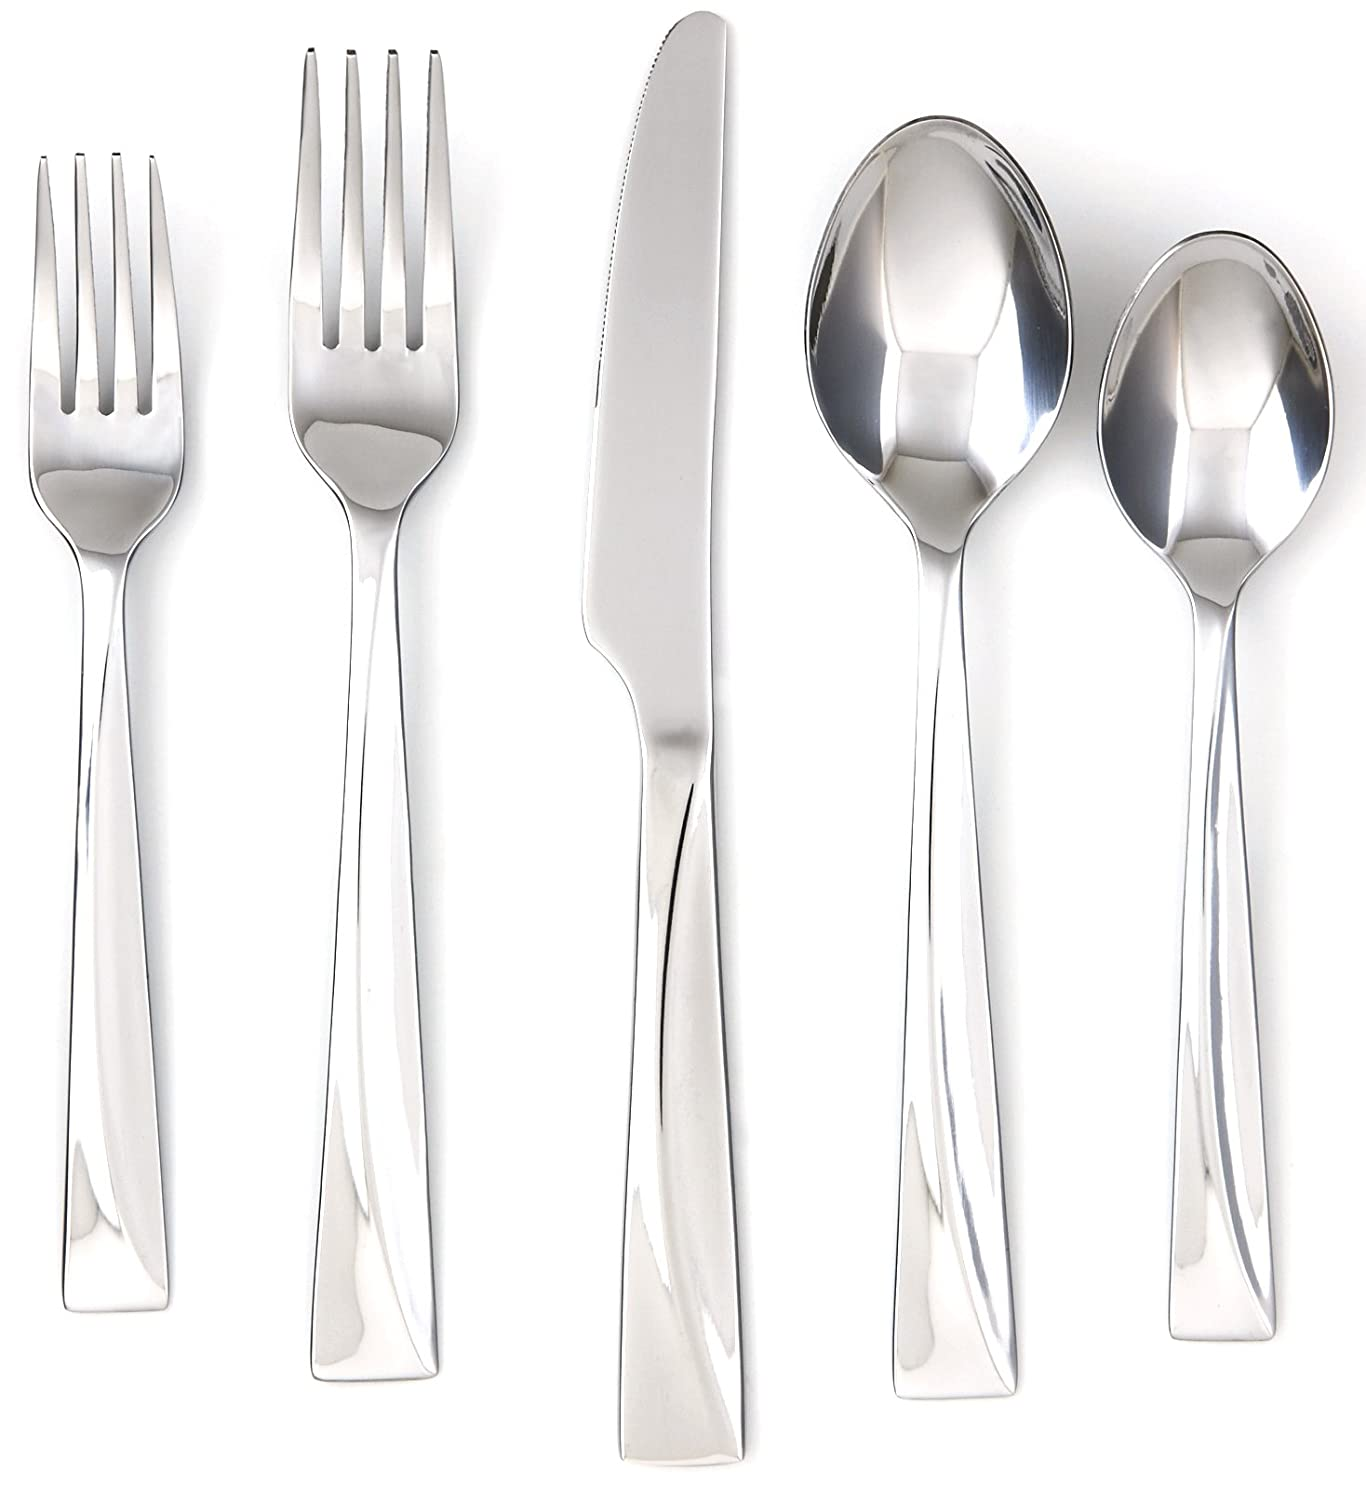 Amazon.com | Cambridge Silversmiths Jasper Mirror 20-Piece Flatware Set, Service for 4: Flatware Sets